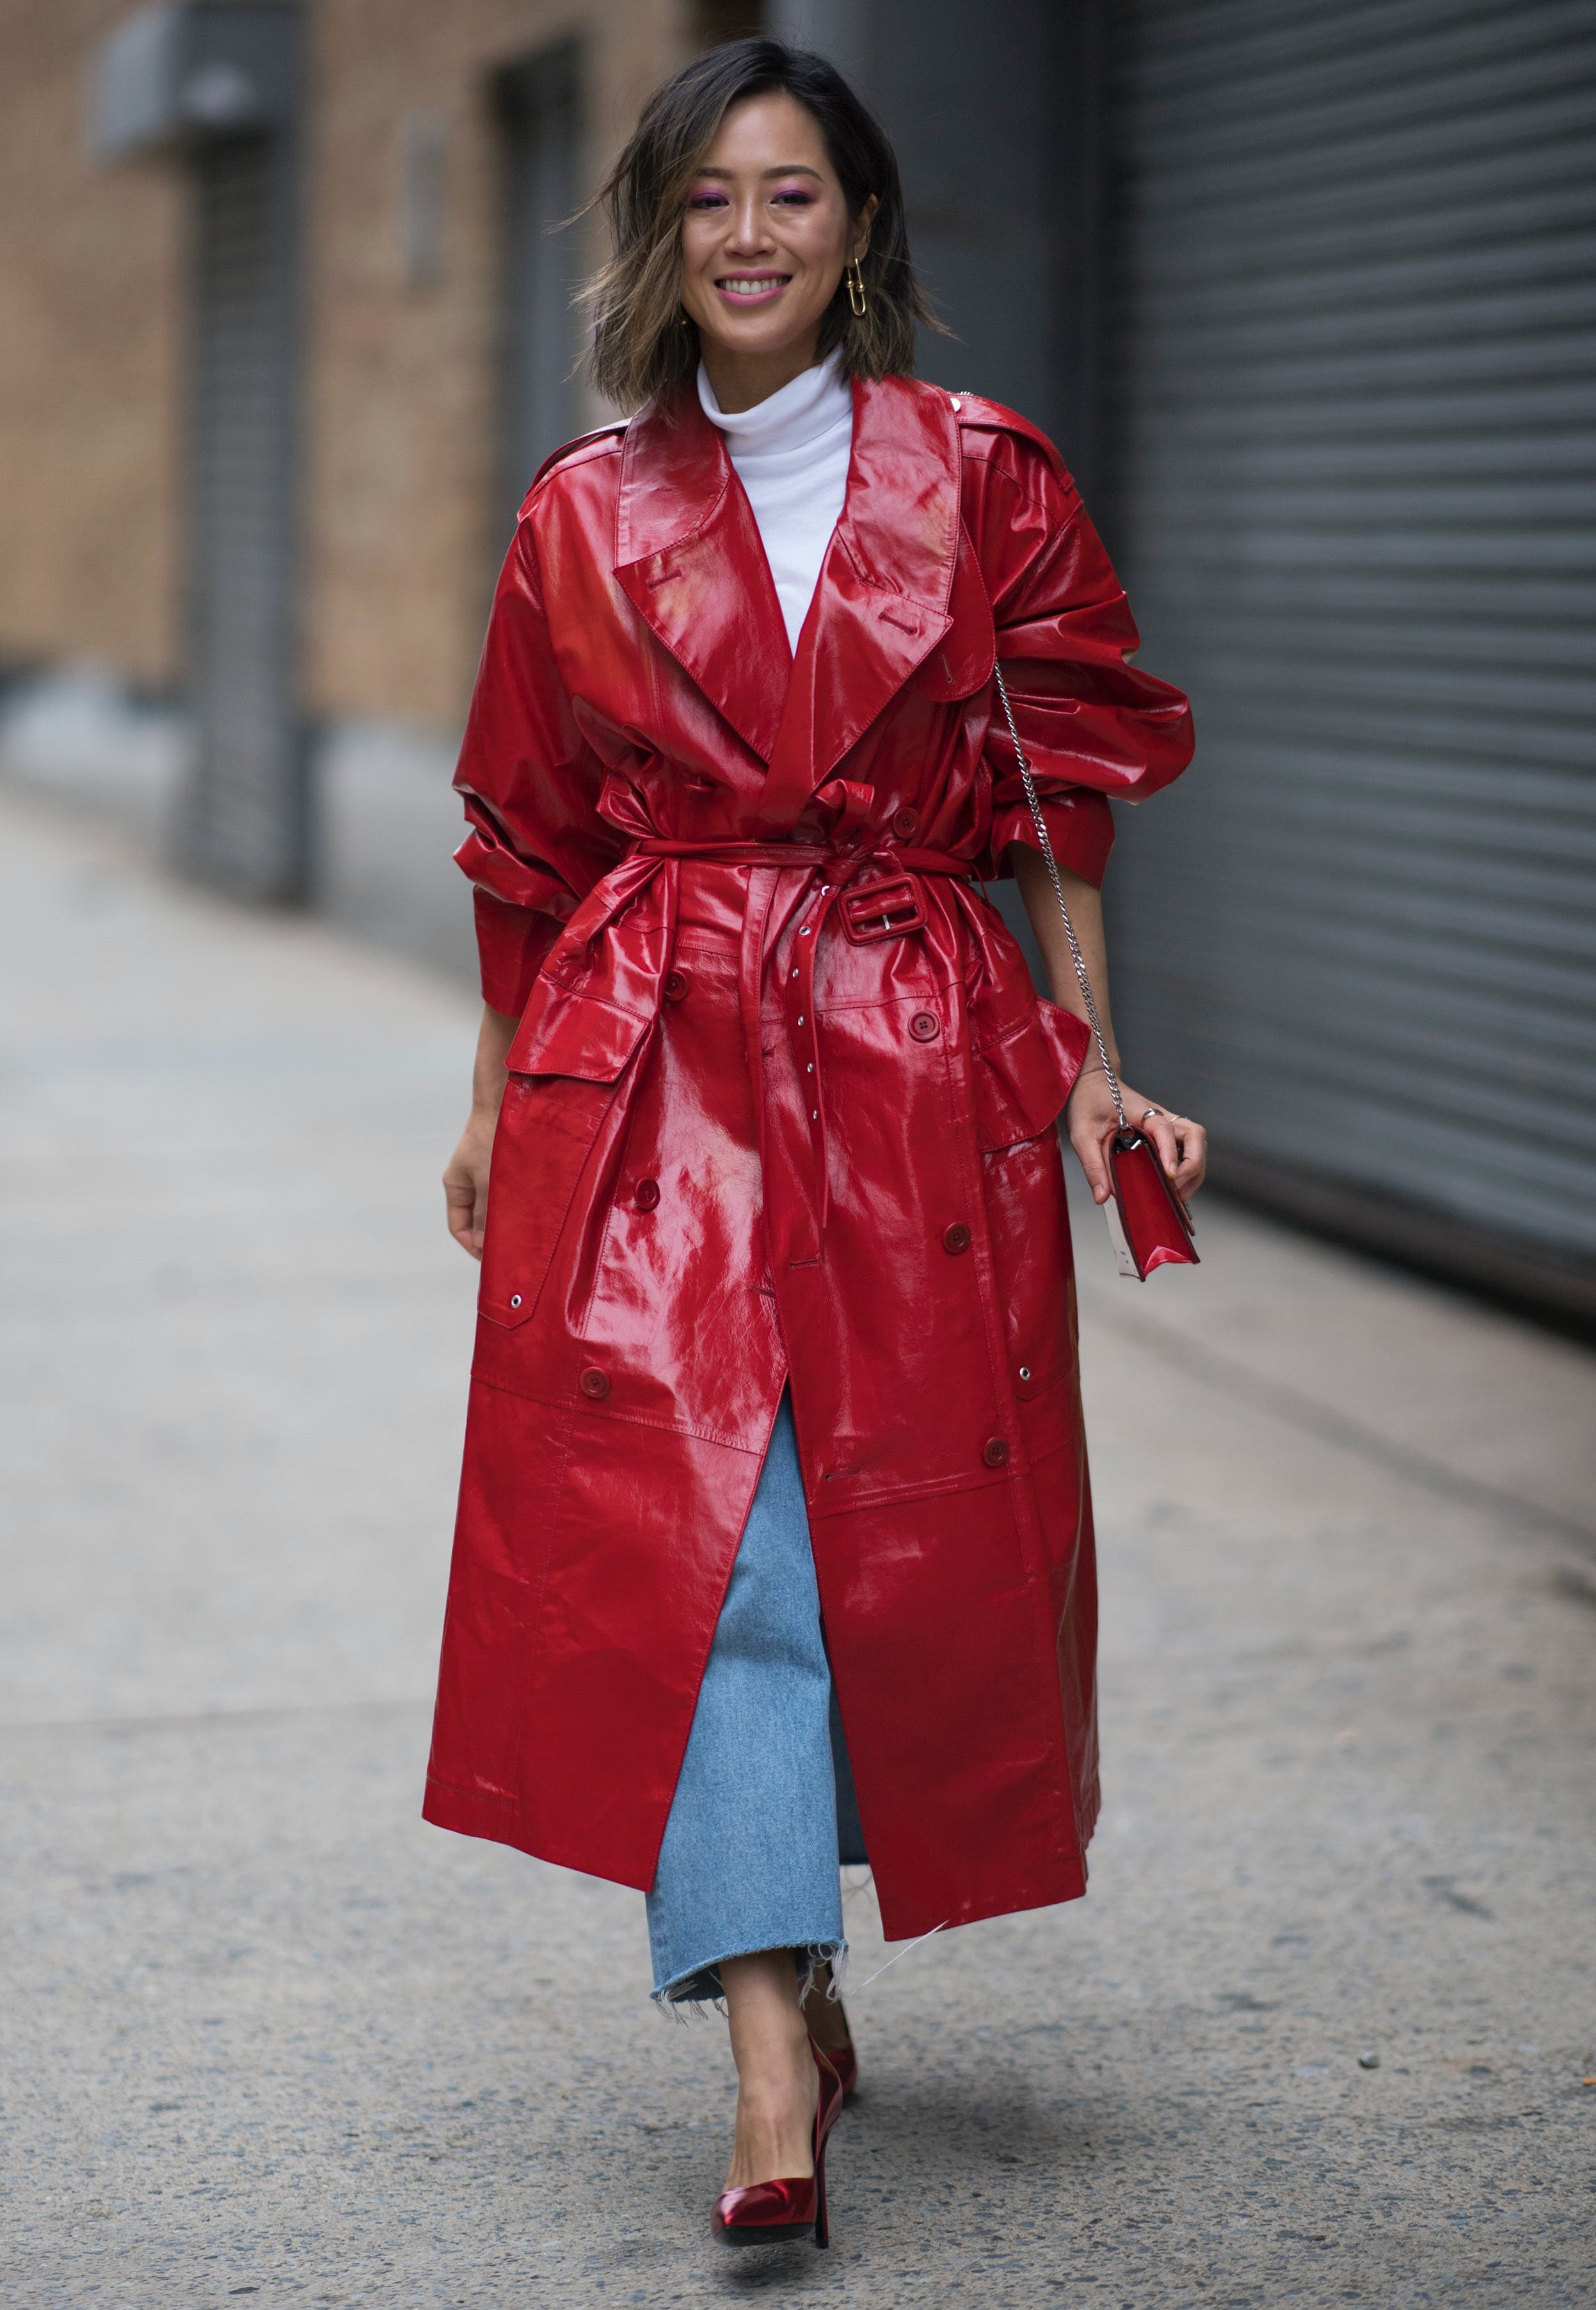 aimee song wearing a bold red trench coat